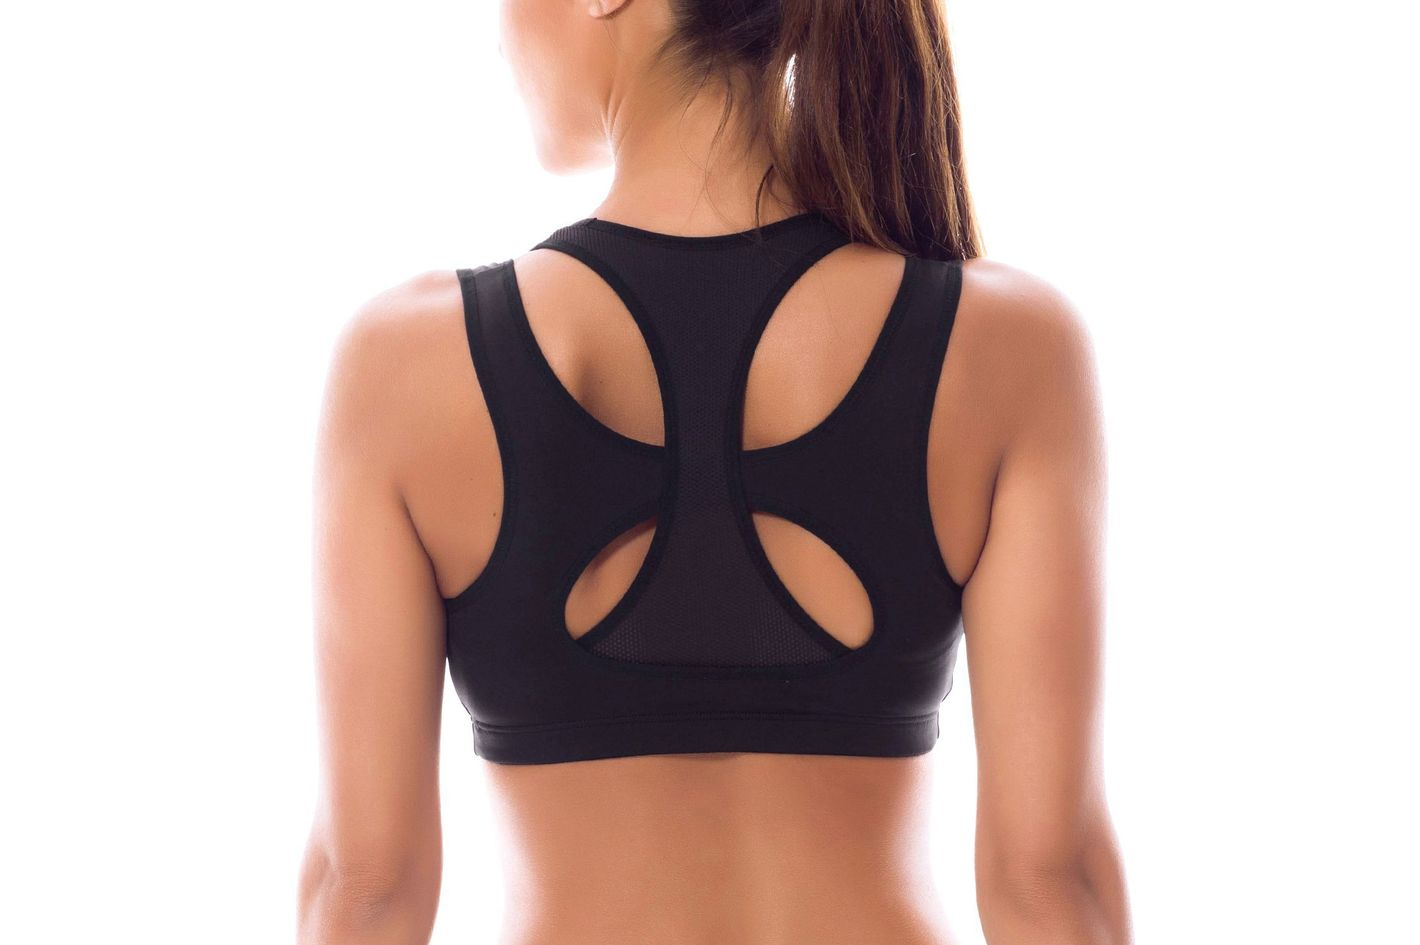 49a59382af SYROKAN Women's High Impact Support Wirefree Workout Racerback Sports Bra  Top